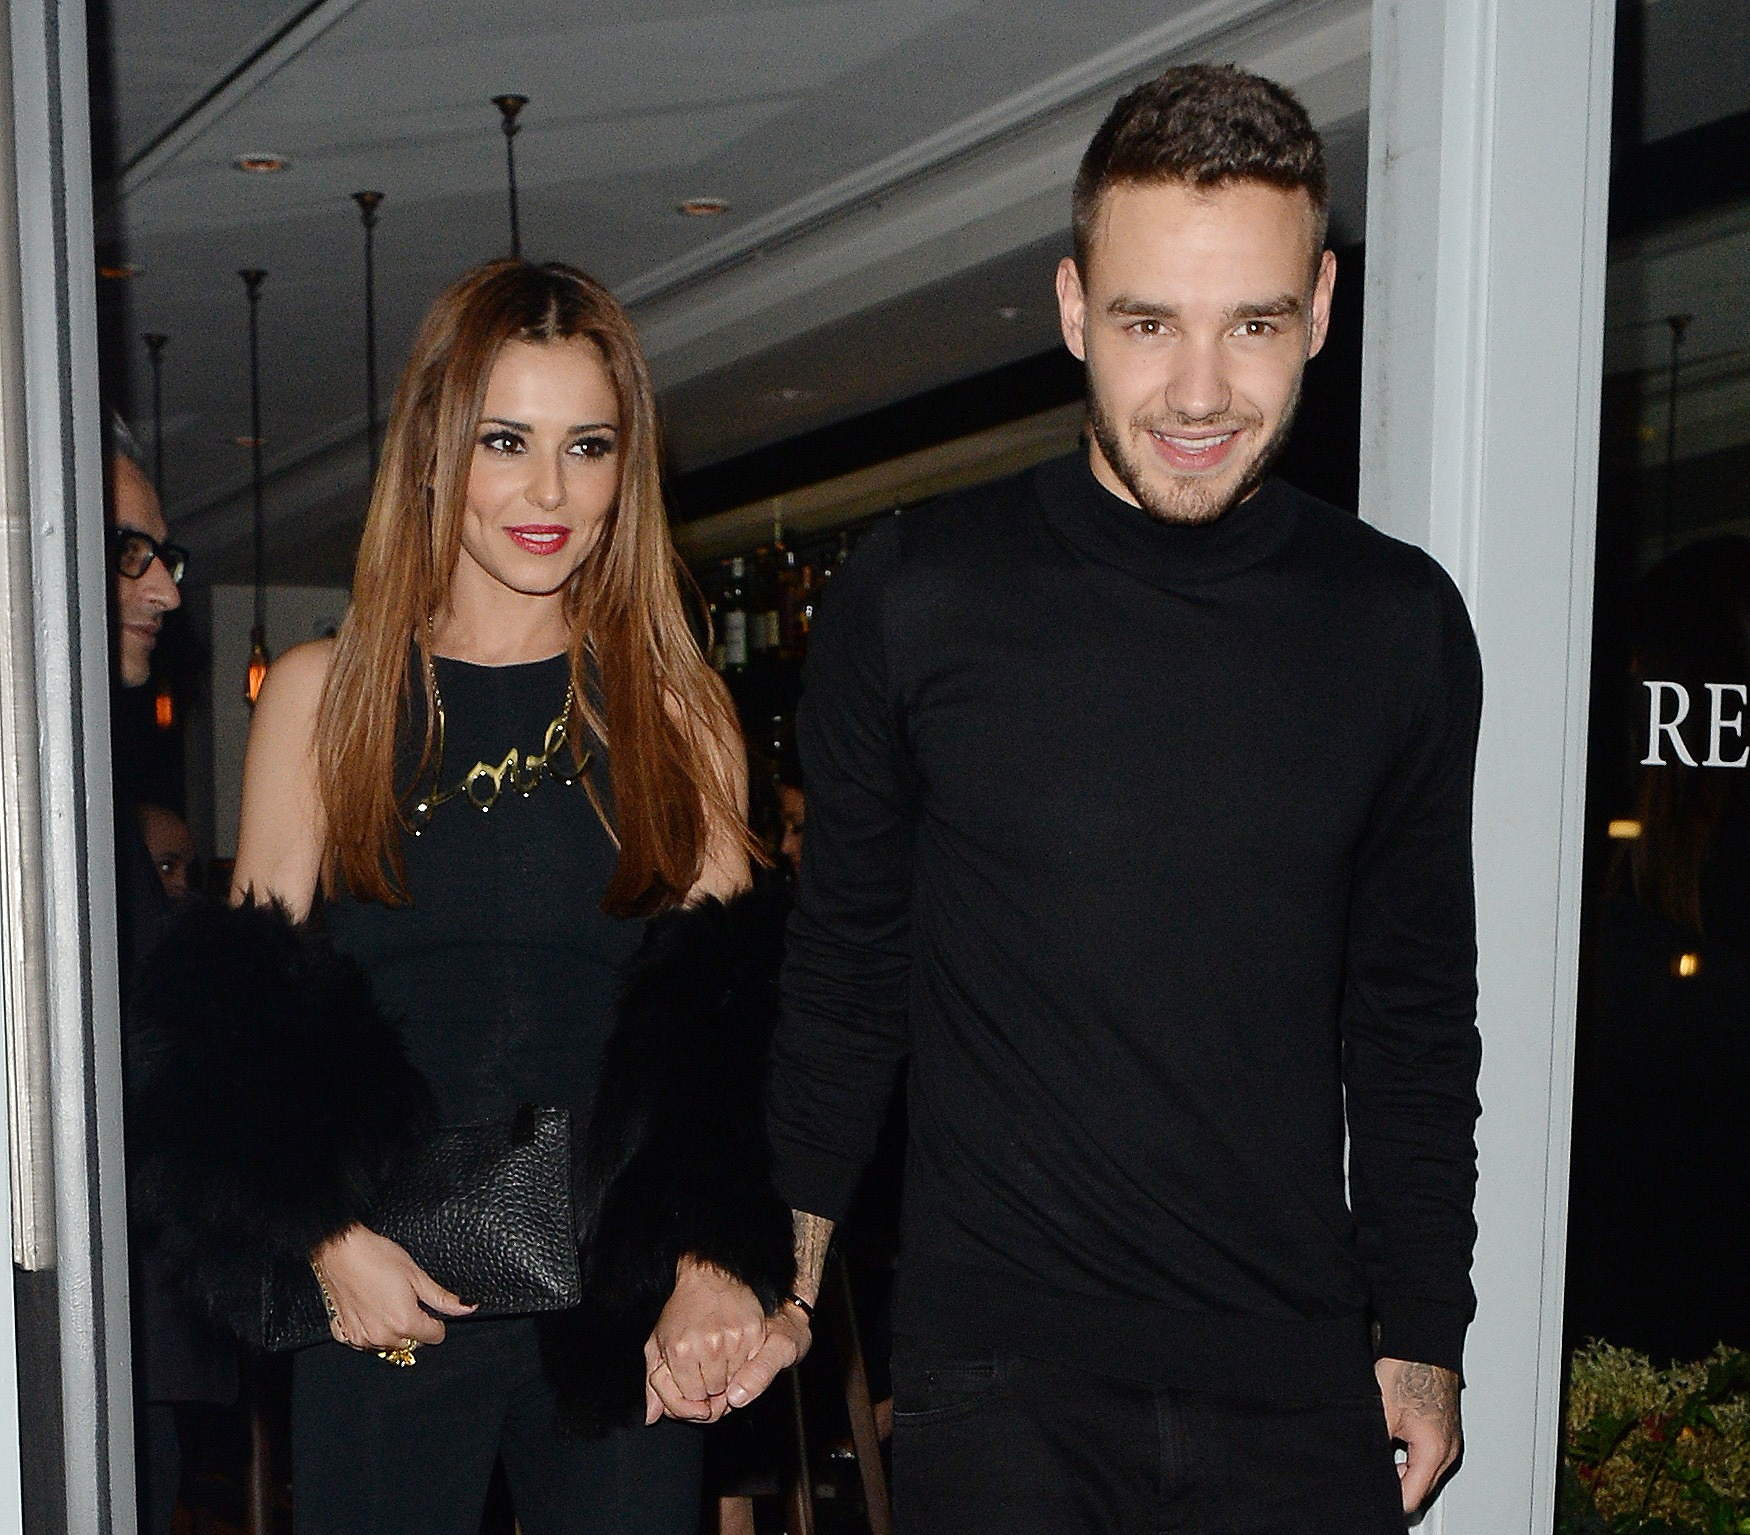 Is it splitsville for Cheryl, Liam Payne?